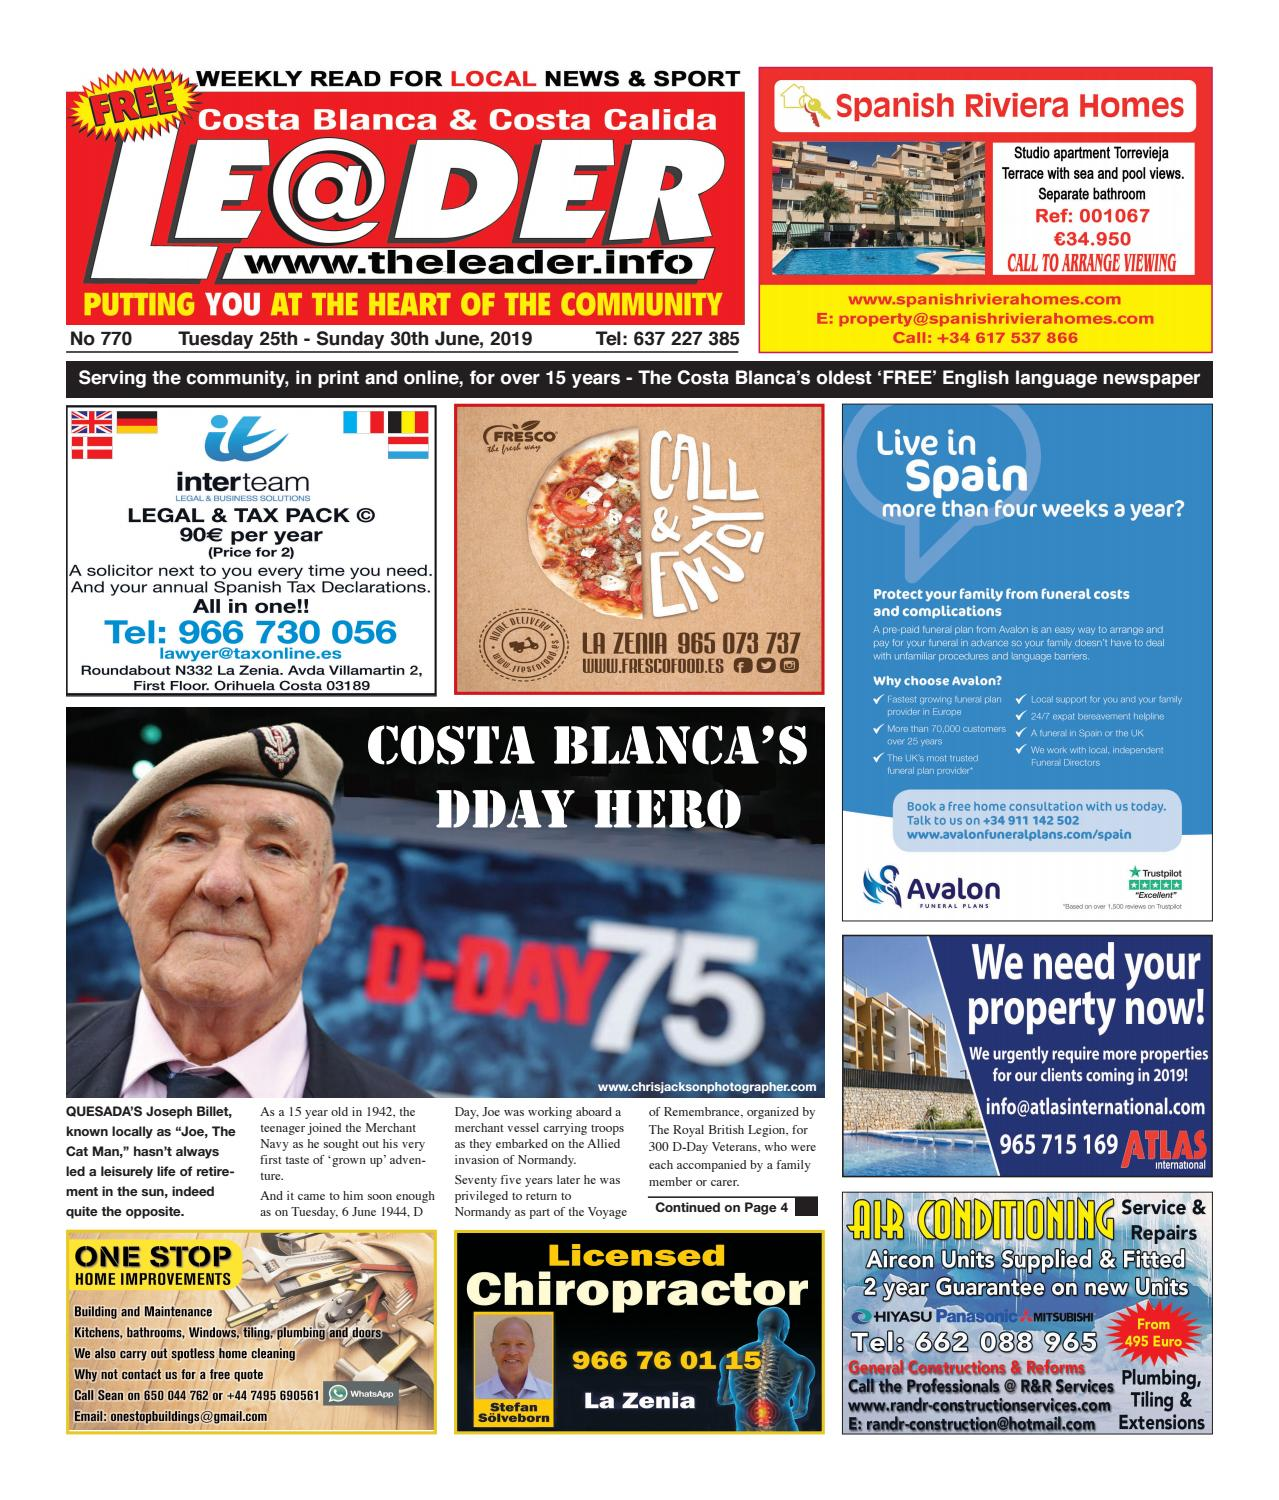 Edition 770 - The Leader Newspaper by The Leader - issuu